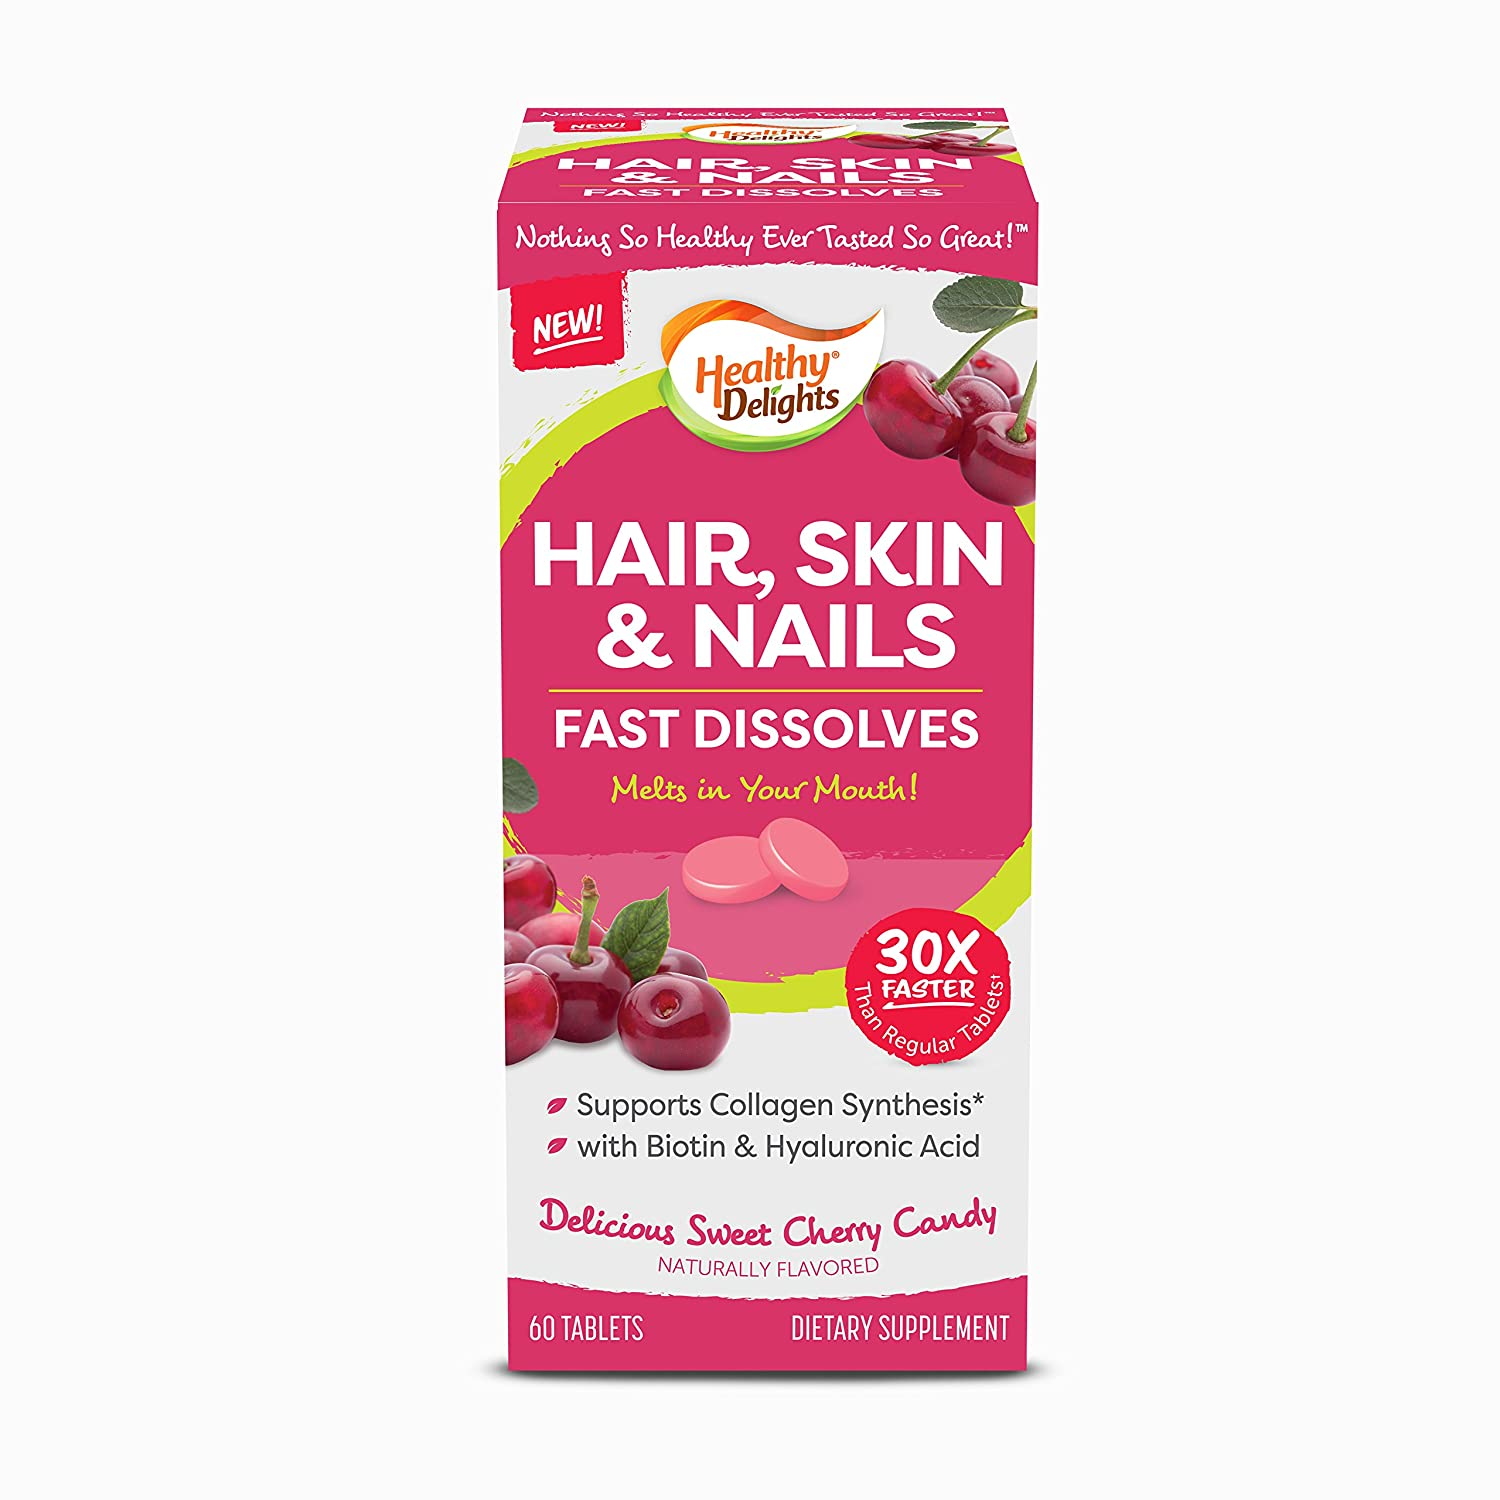 Amazon.com: Healthy Delights, Hair, Skin & Nails, Cheery Flavor Fast Dissolves, Naturally Flavored, Supporting Collagen Synthesis, Packed with Biotin ...